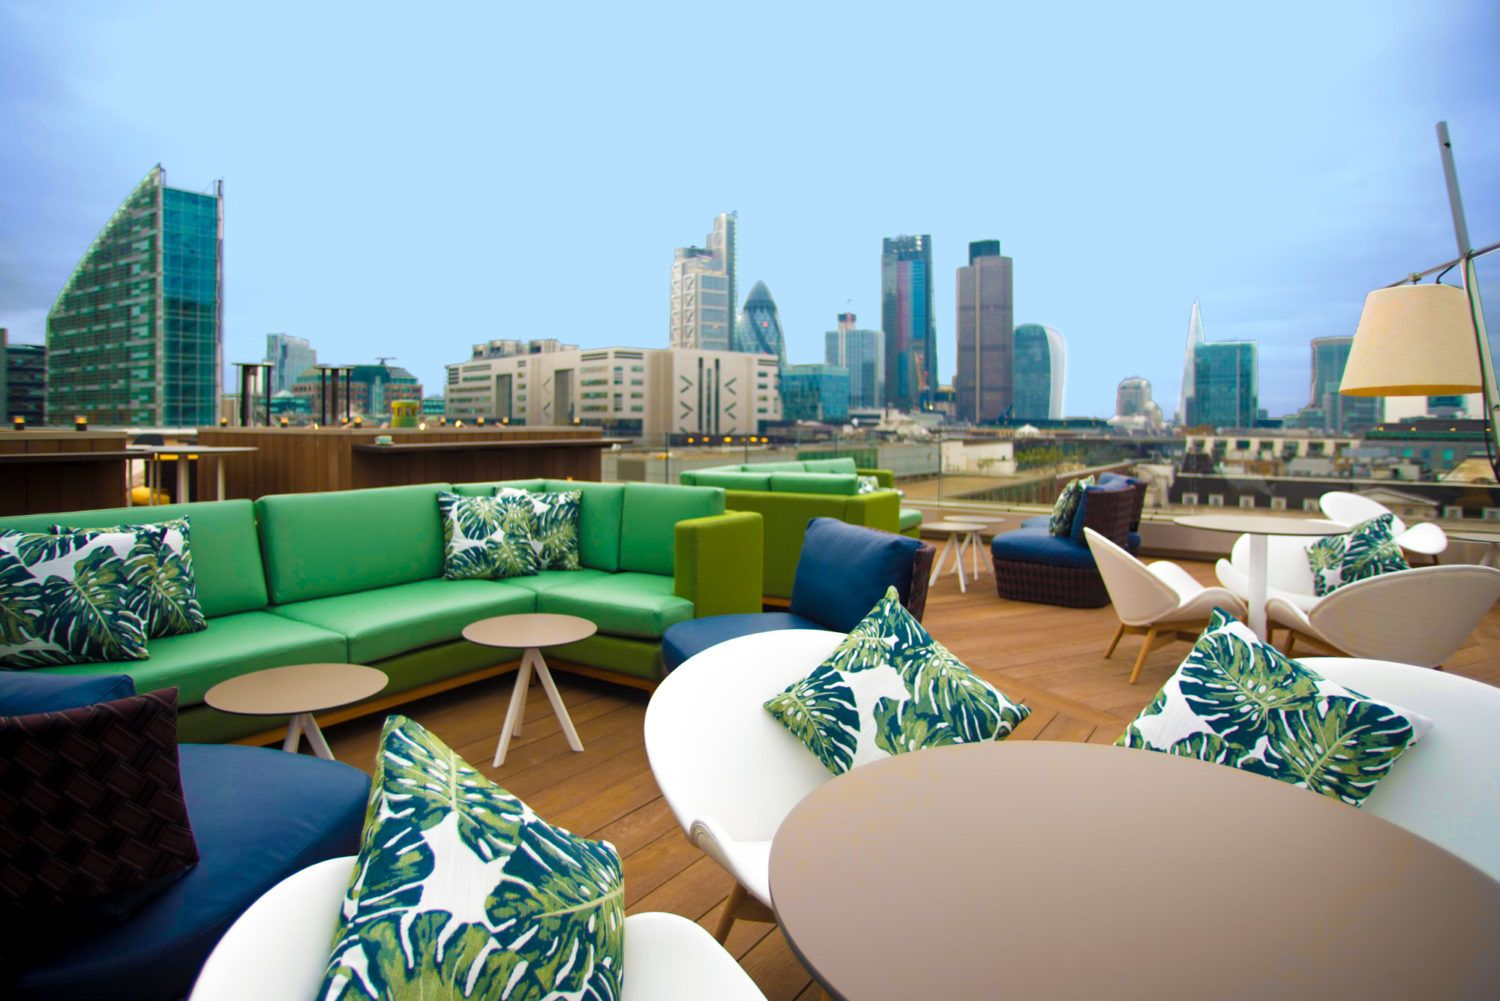 Aviary London S Hottest Rooftop Restaurant And Terrace Bar Is Situated On The 10th Floor Of Montcalm Hotel Best Rooftop Bars Montcalm Hotel Rooftop Restaurant